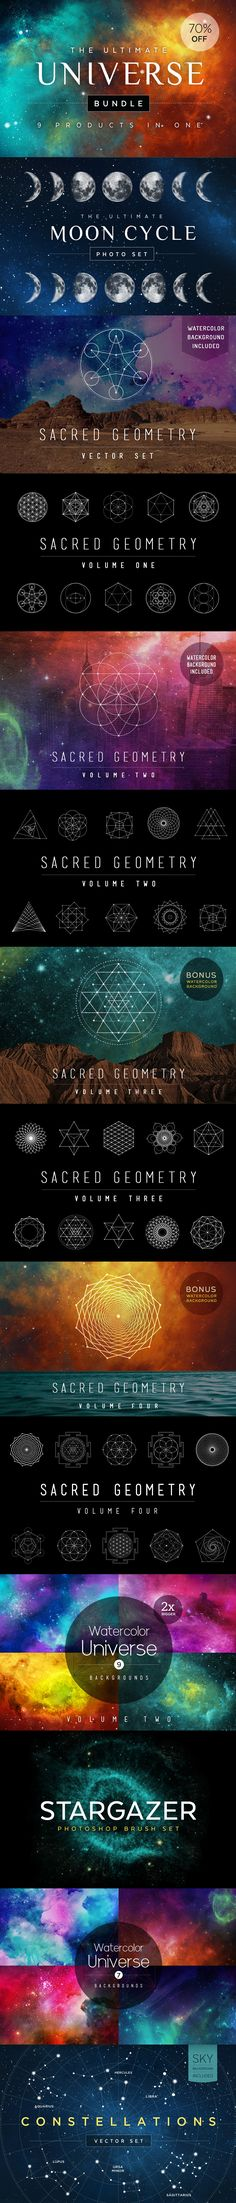 The Ultimate #Universe #Design #Bundle includes all my favorites and best sellers, including the #SacredGeometry Bundle (Vol. 1-3) which was one of the Top 100 Products on Creative Market for 2015!